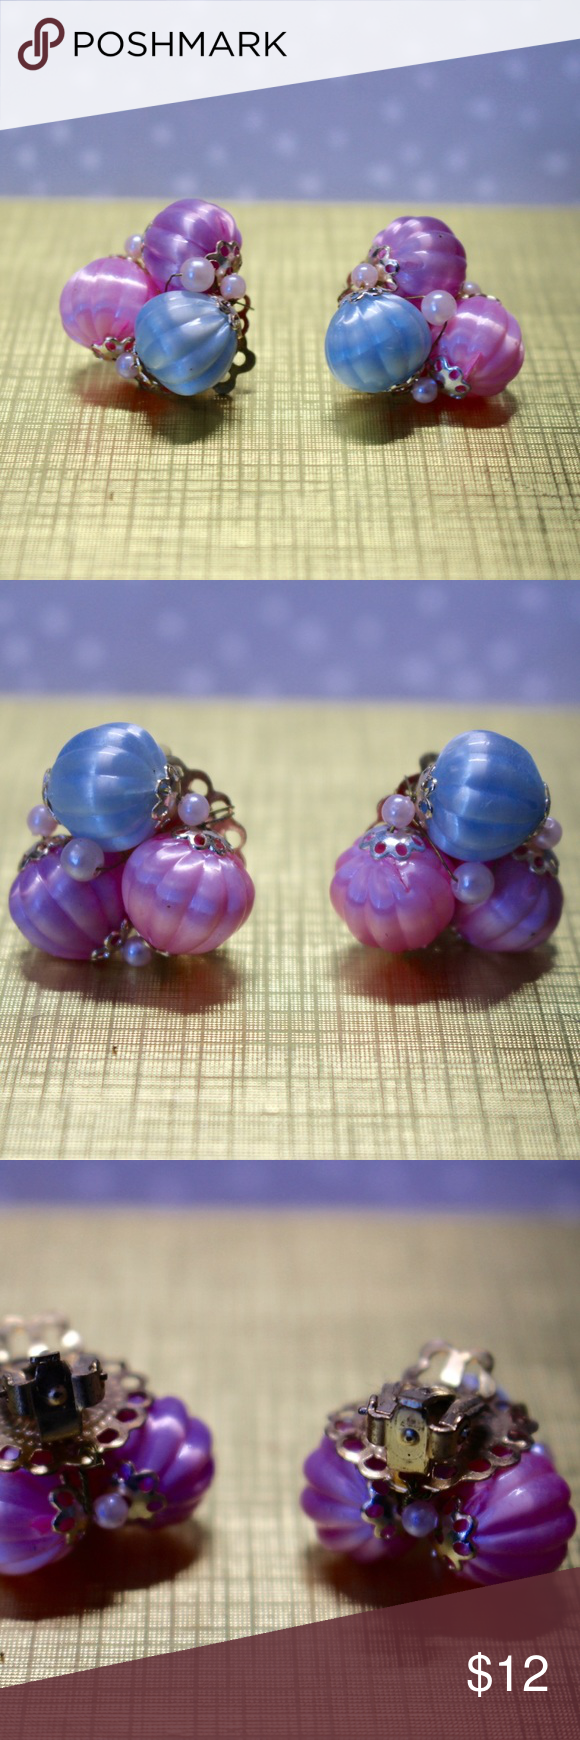 """🆕Cotton Candy Earrings 🔹Pastel pink, purple, & blue beaded earrings with miniature pearls.🔹Gold tone accents.🔹Signed """"Japan"""".🔹Vintage clip-ons.🔹Reasonable offers welcome or bundle for discount! Vintage Jewelry Earrings"""